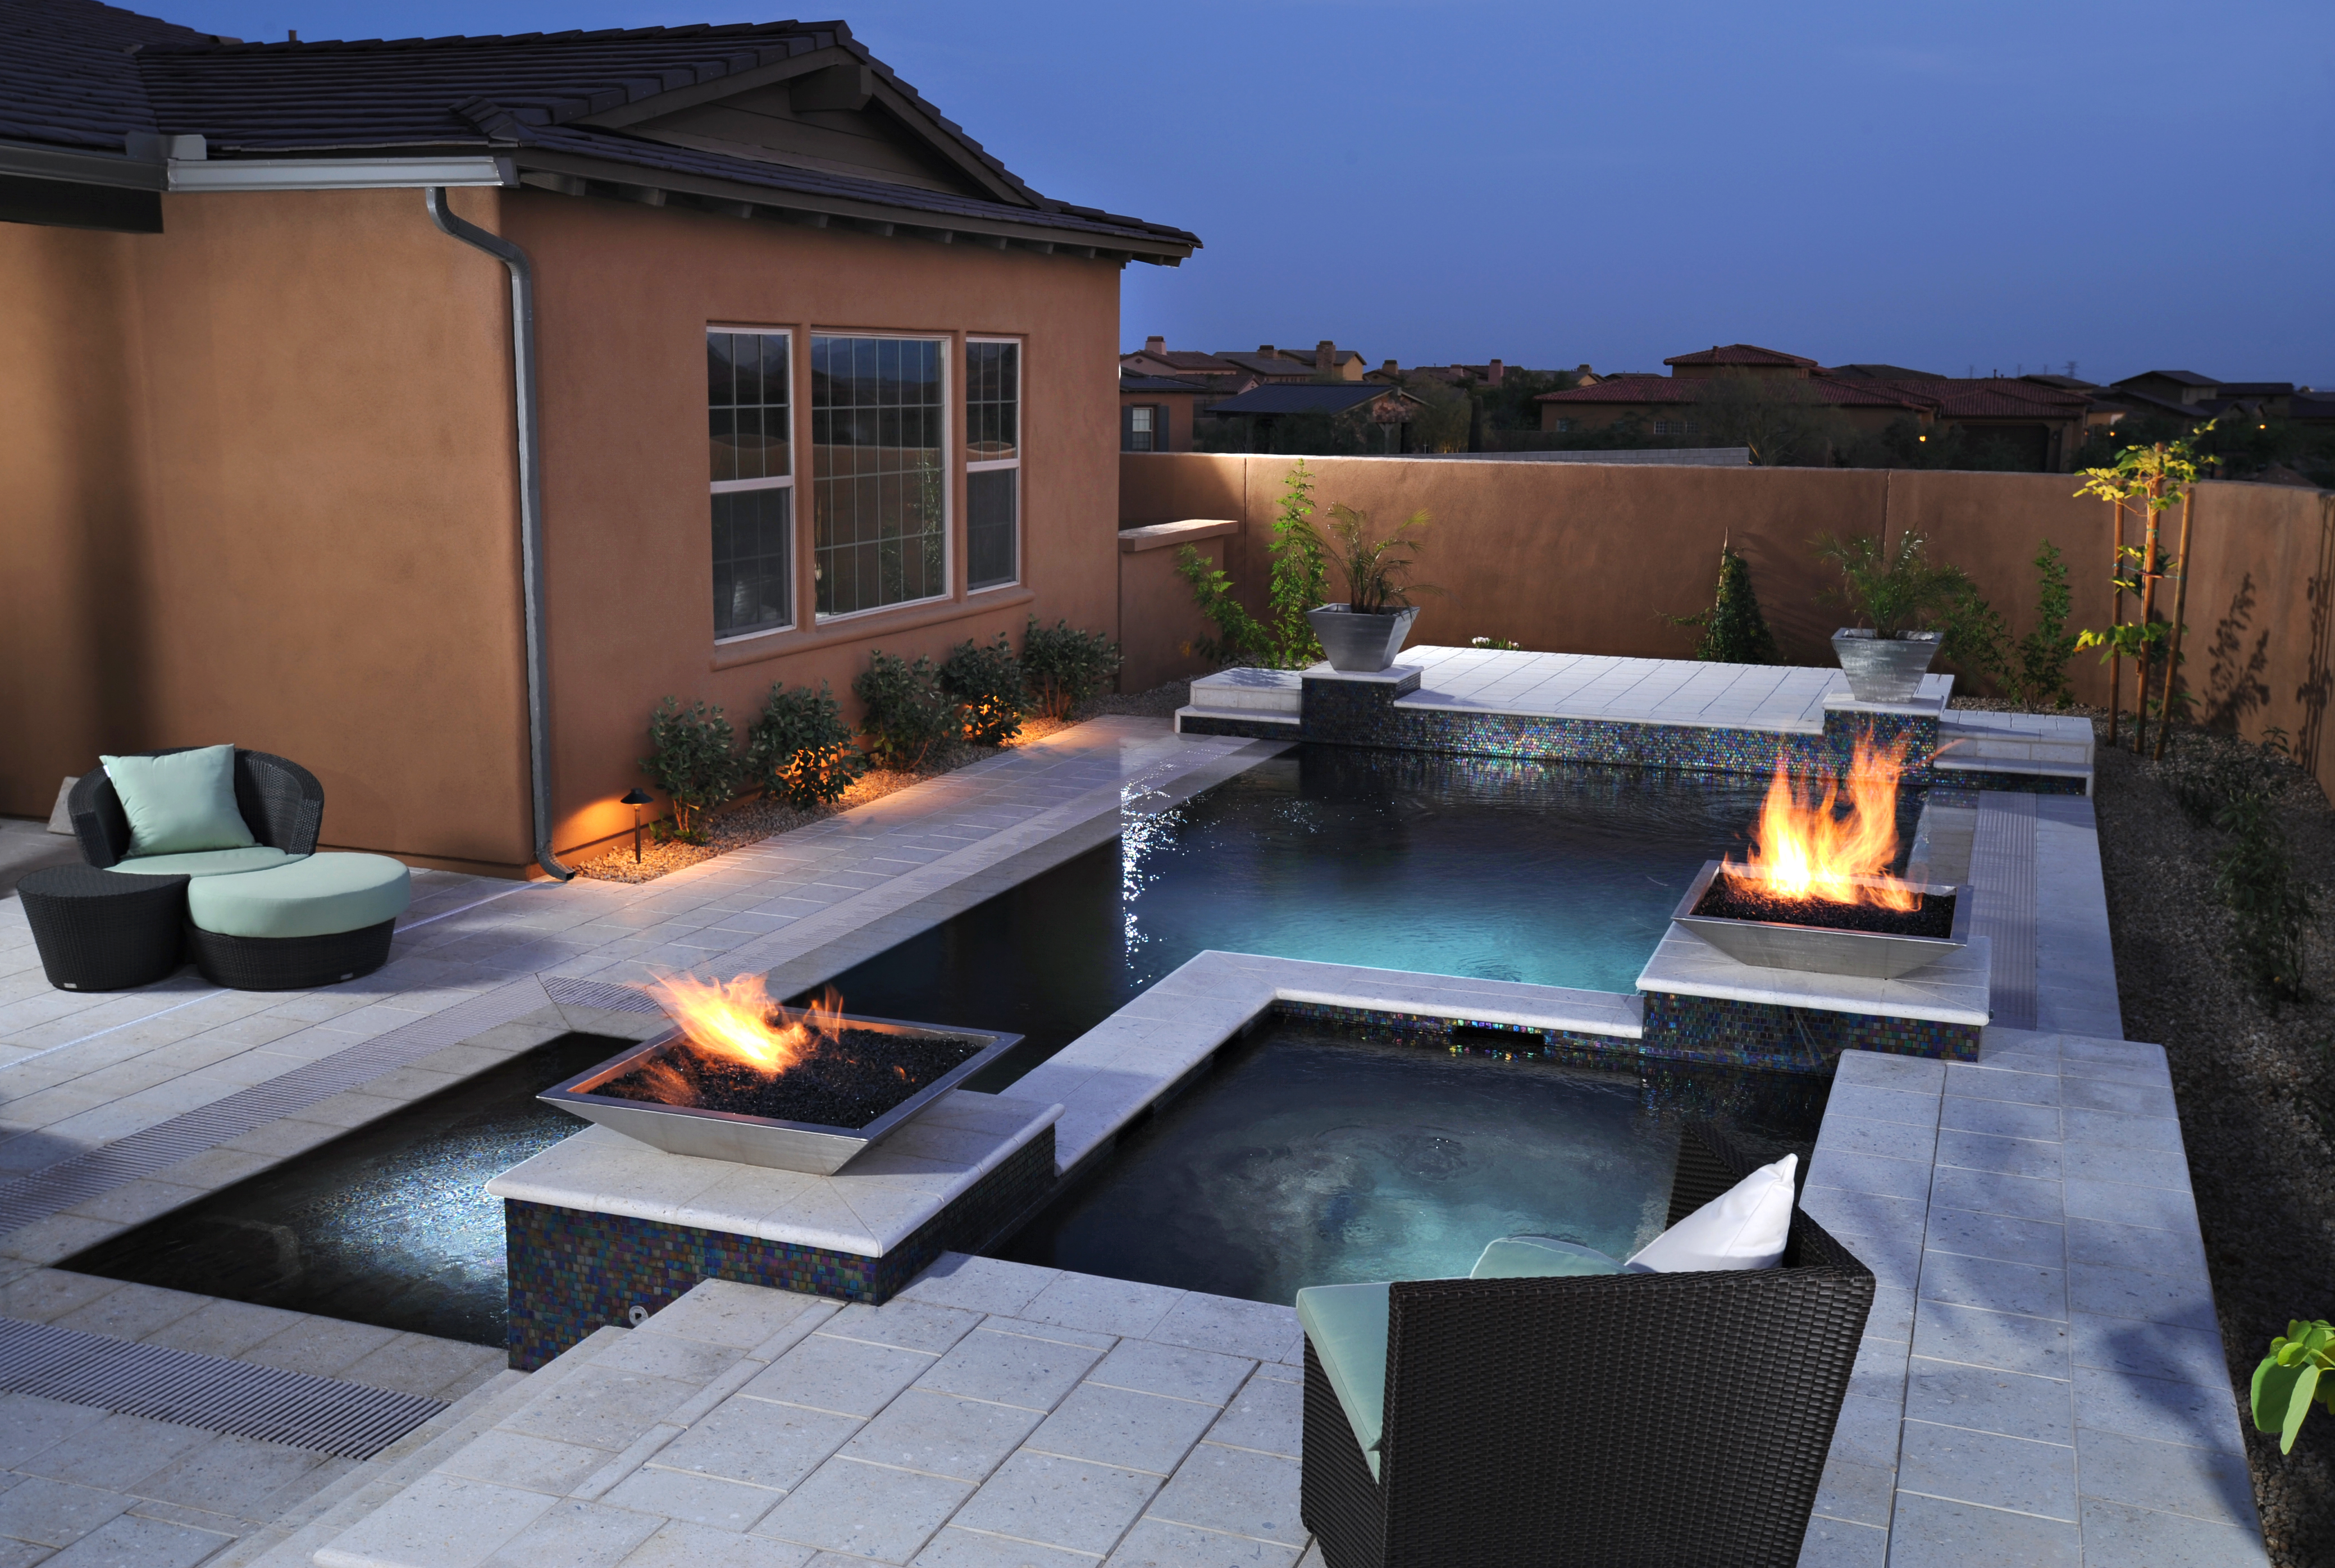 artistic paver stone decking • california pools & landscape